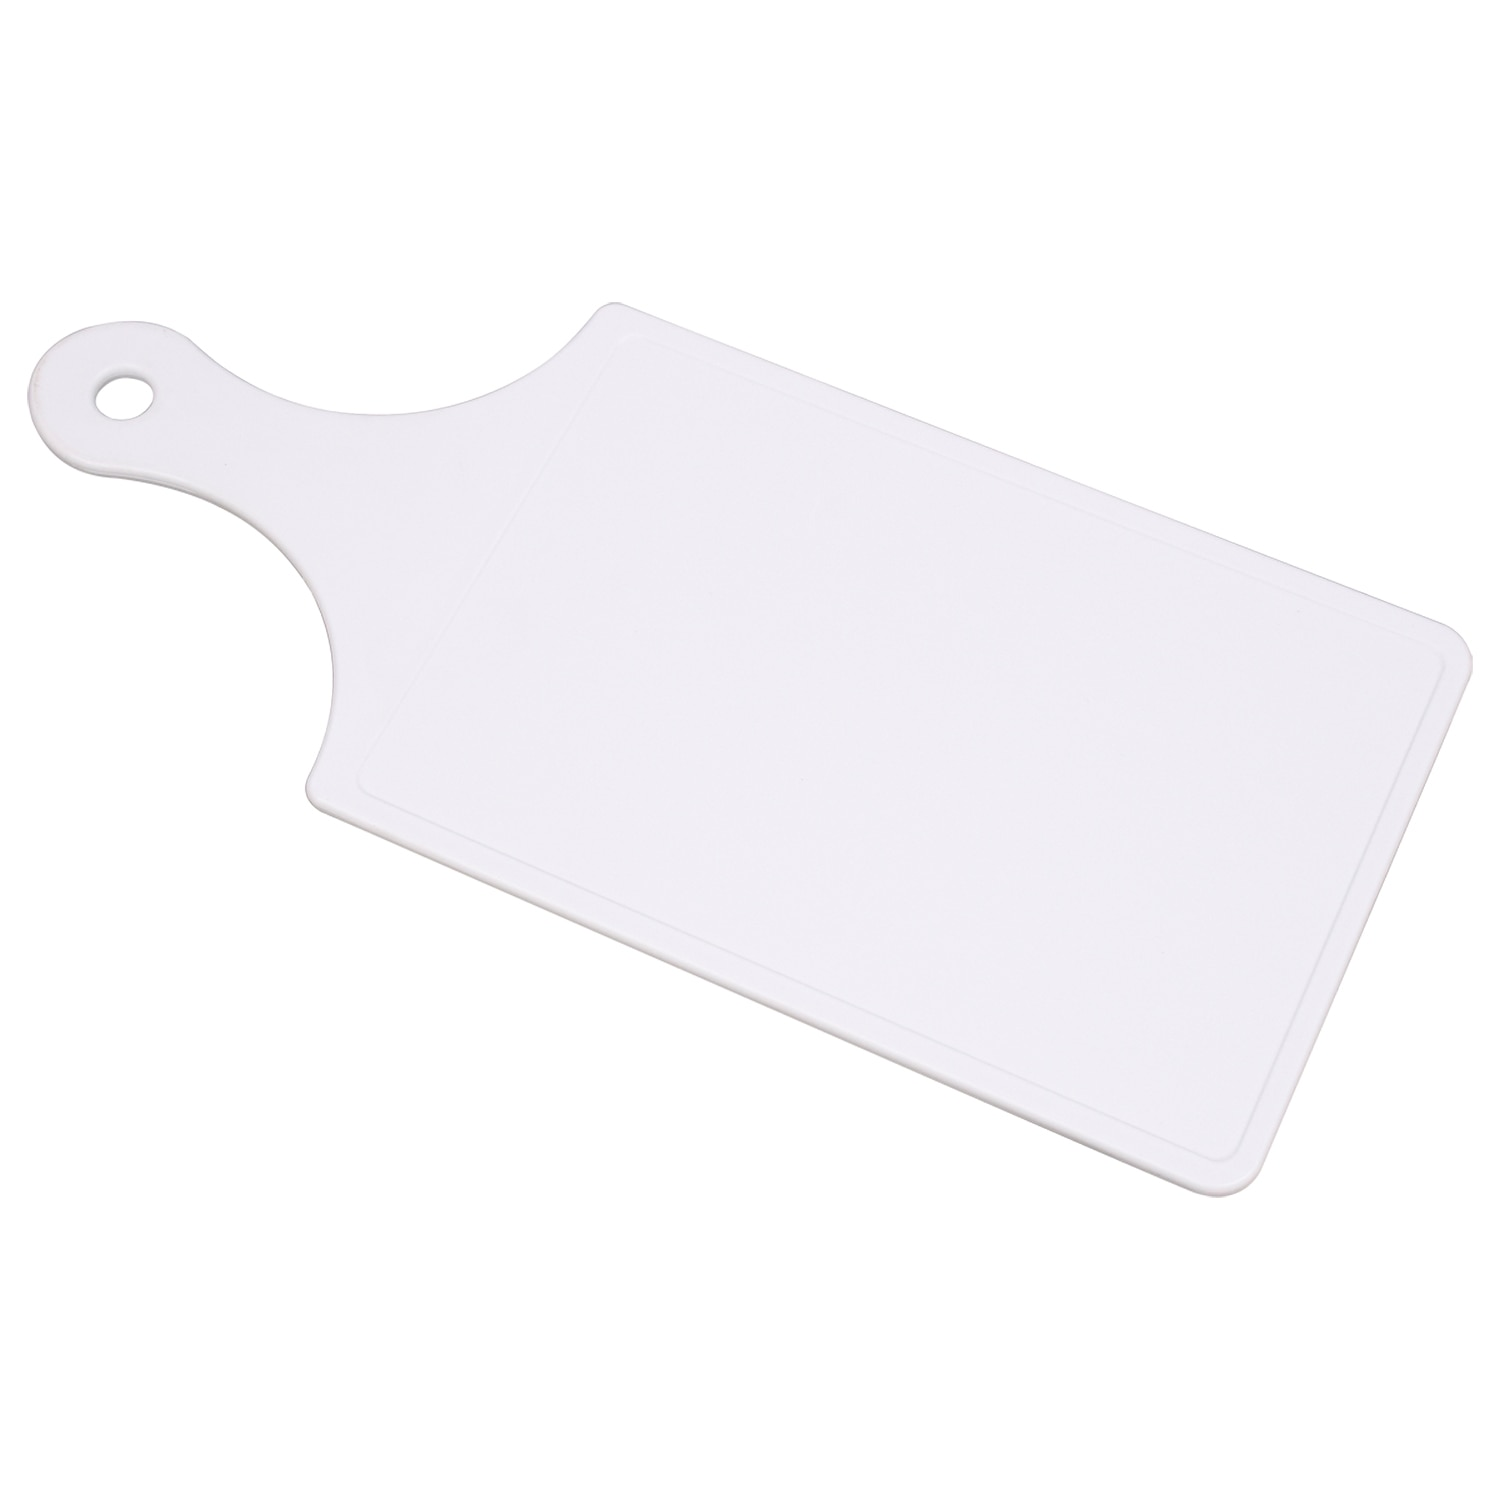 Cooking Concepts Paddle Cutting Boards